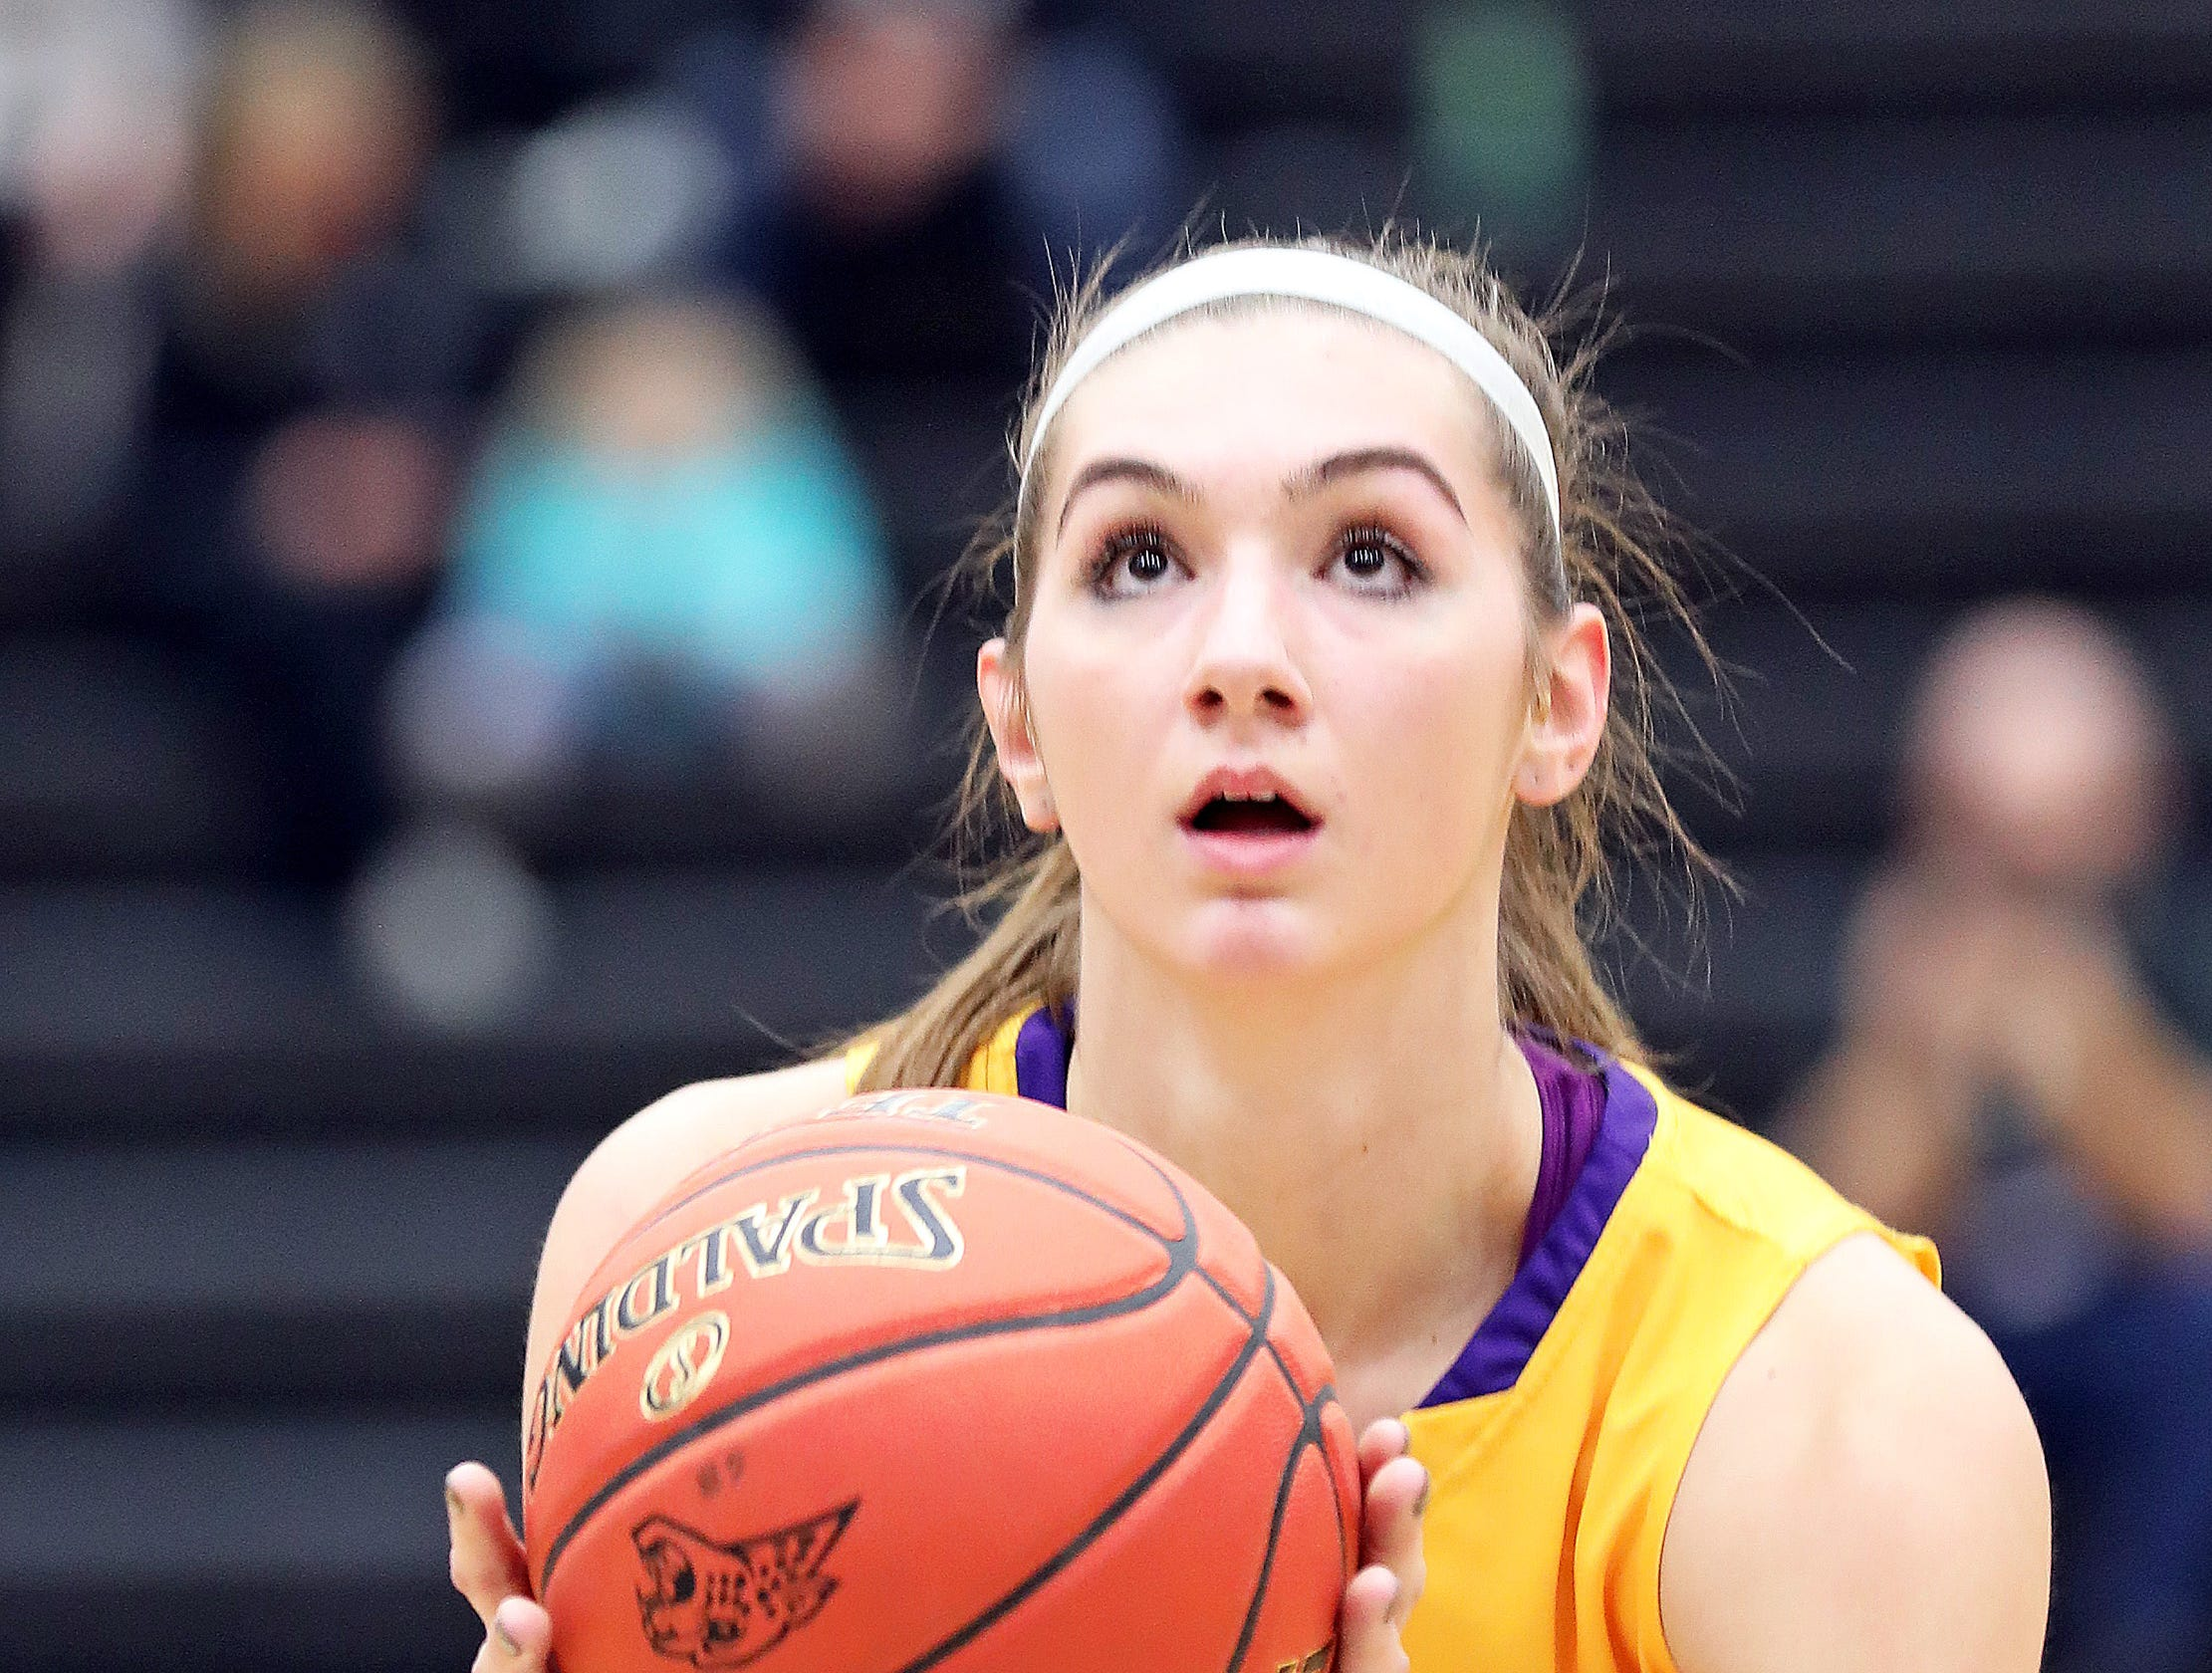 Johnston senior Regan Nesheim sinks the free throw as the Johnston Dragons compete against the Ankeny Centennial Jaguars in high school girls basketball on Friday, Jan. 4, 2019 at Ankeny Centennial High School.